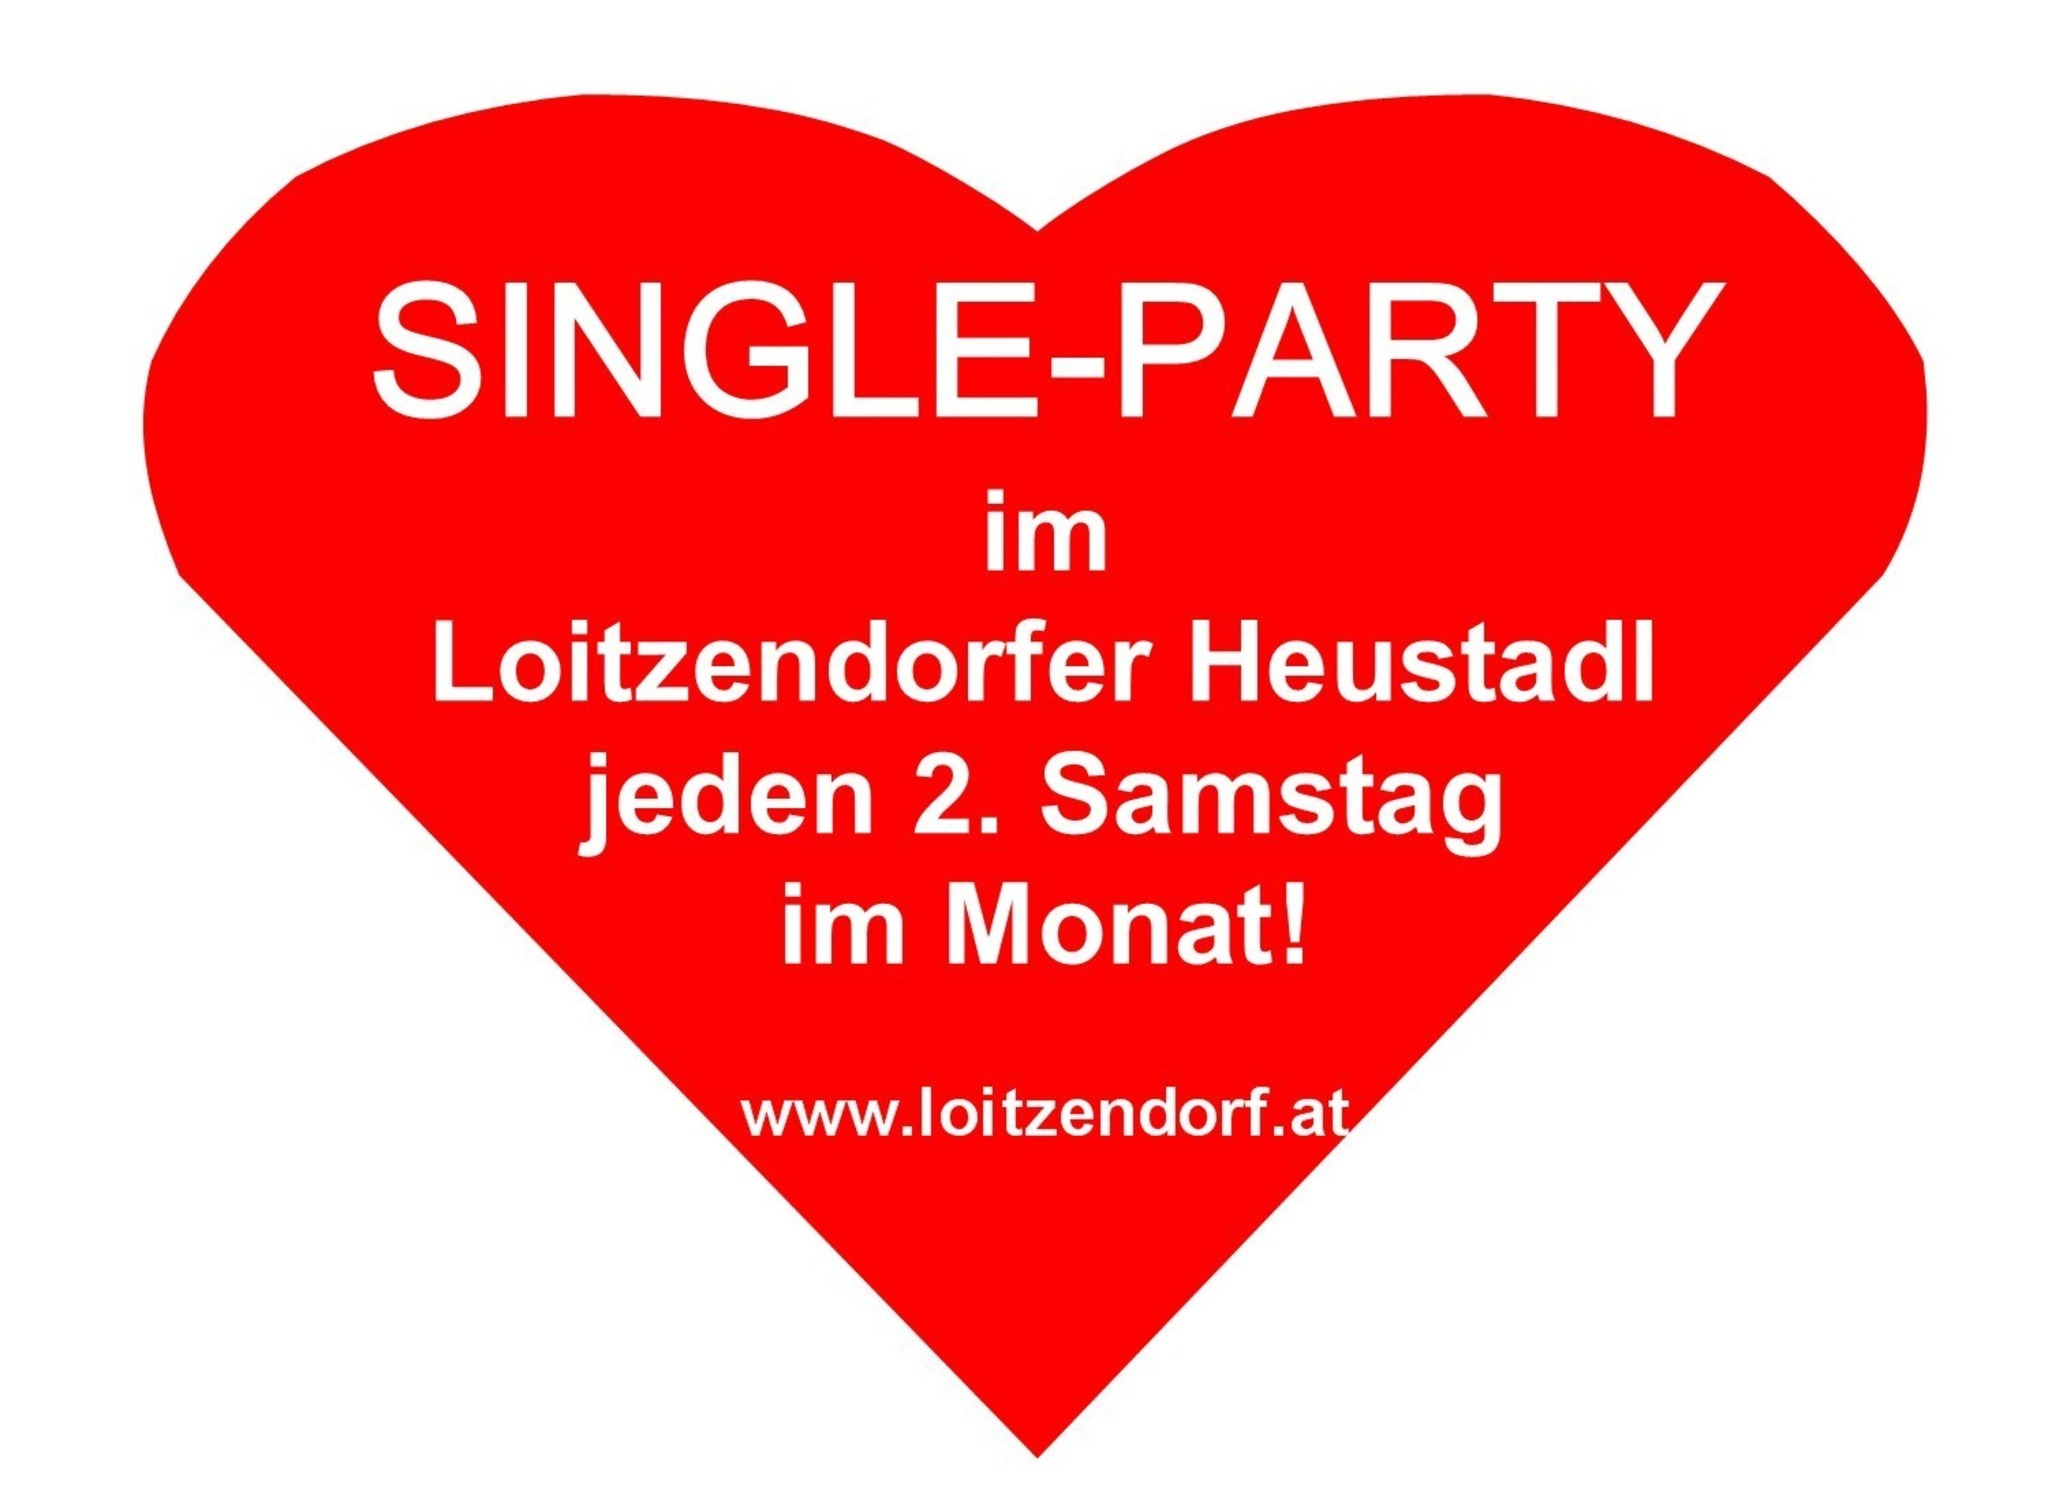 Ampflwang im hausruckwald singles frauen, Single mnner in